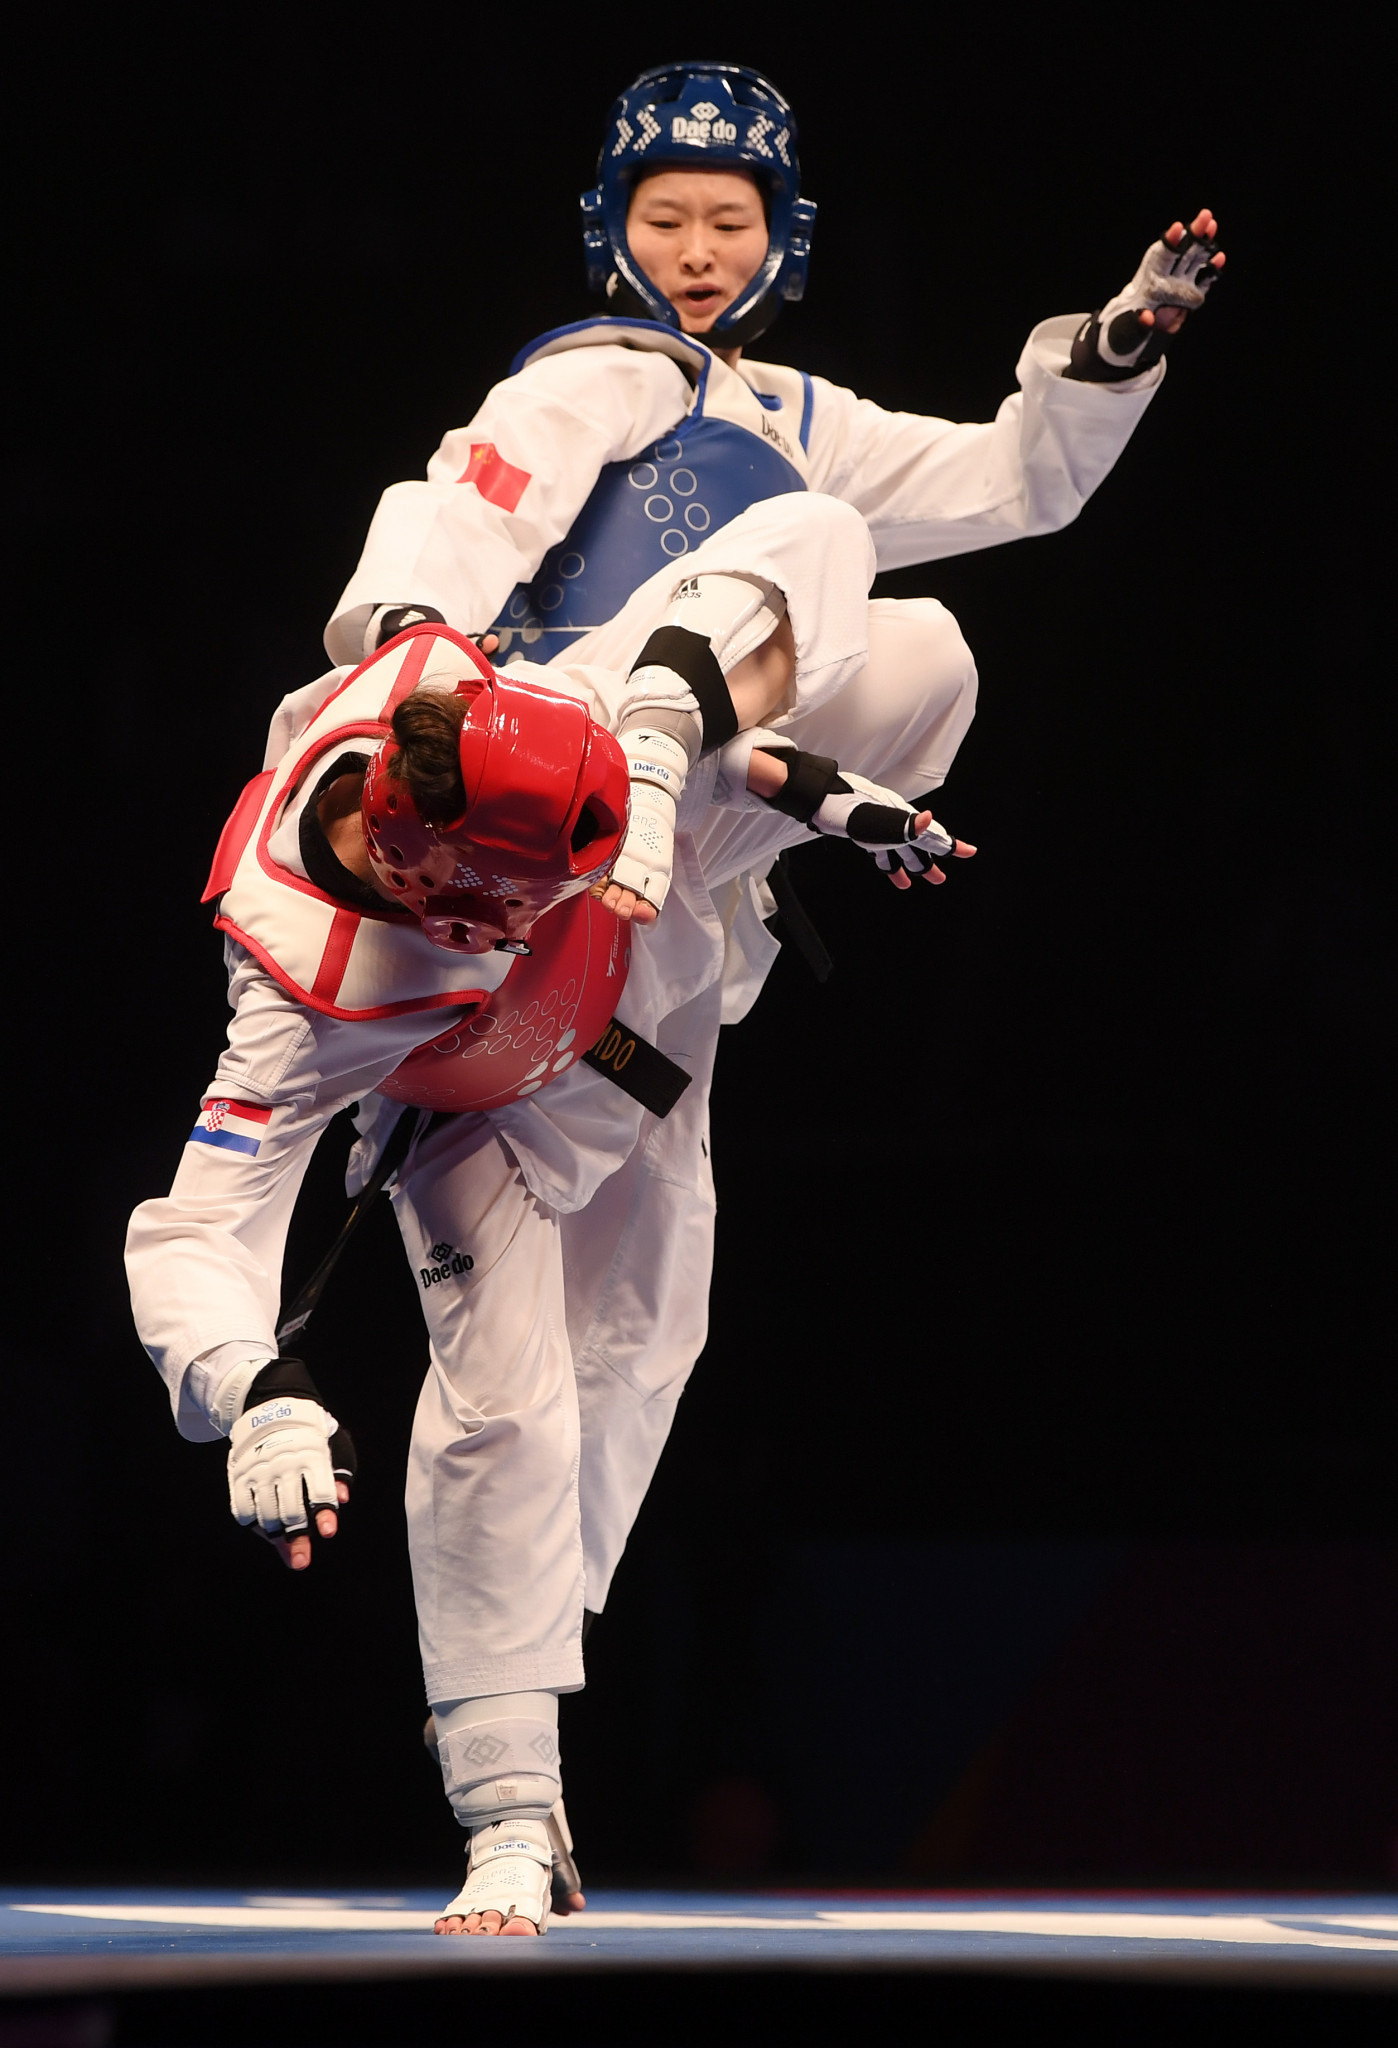 China and South Korea perform strongly on day one of World Taekwondo Grand Prix Final